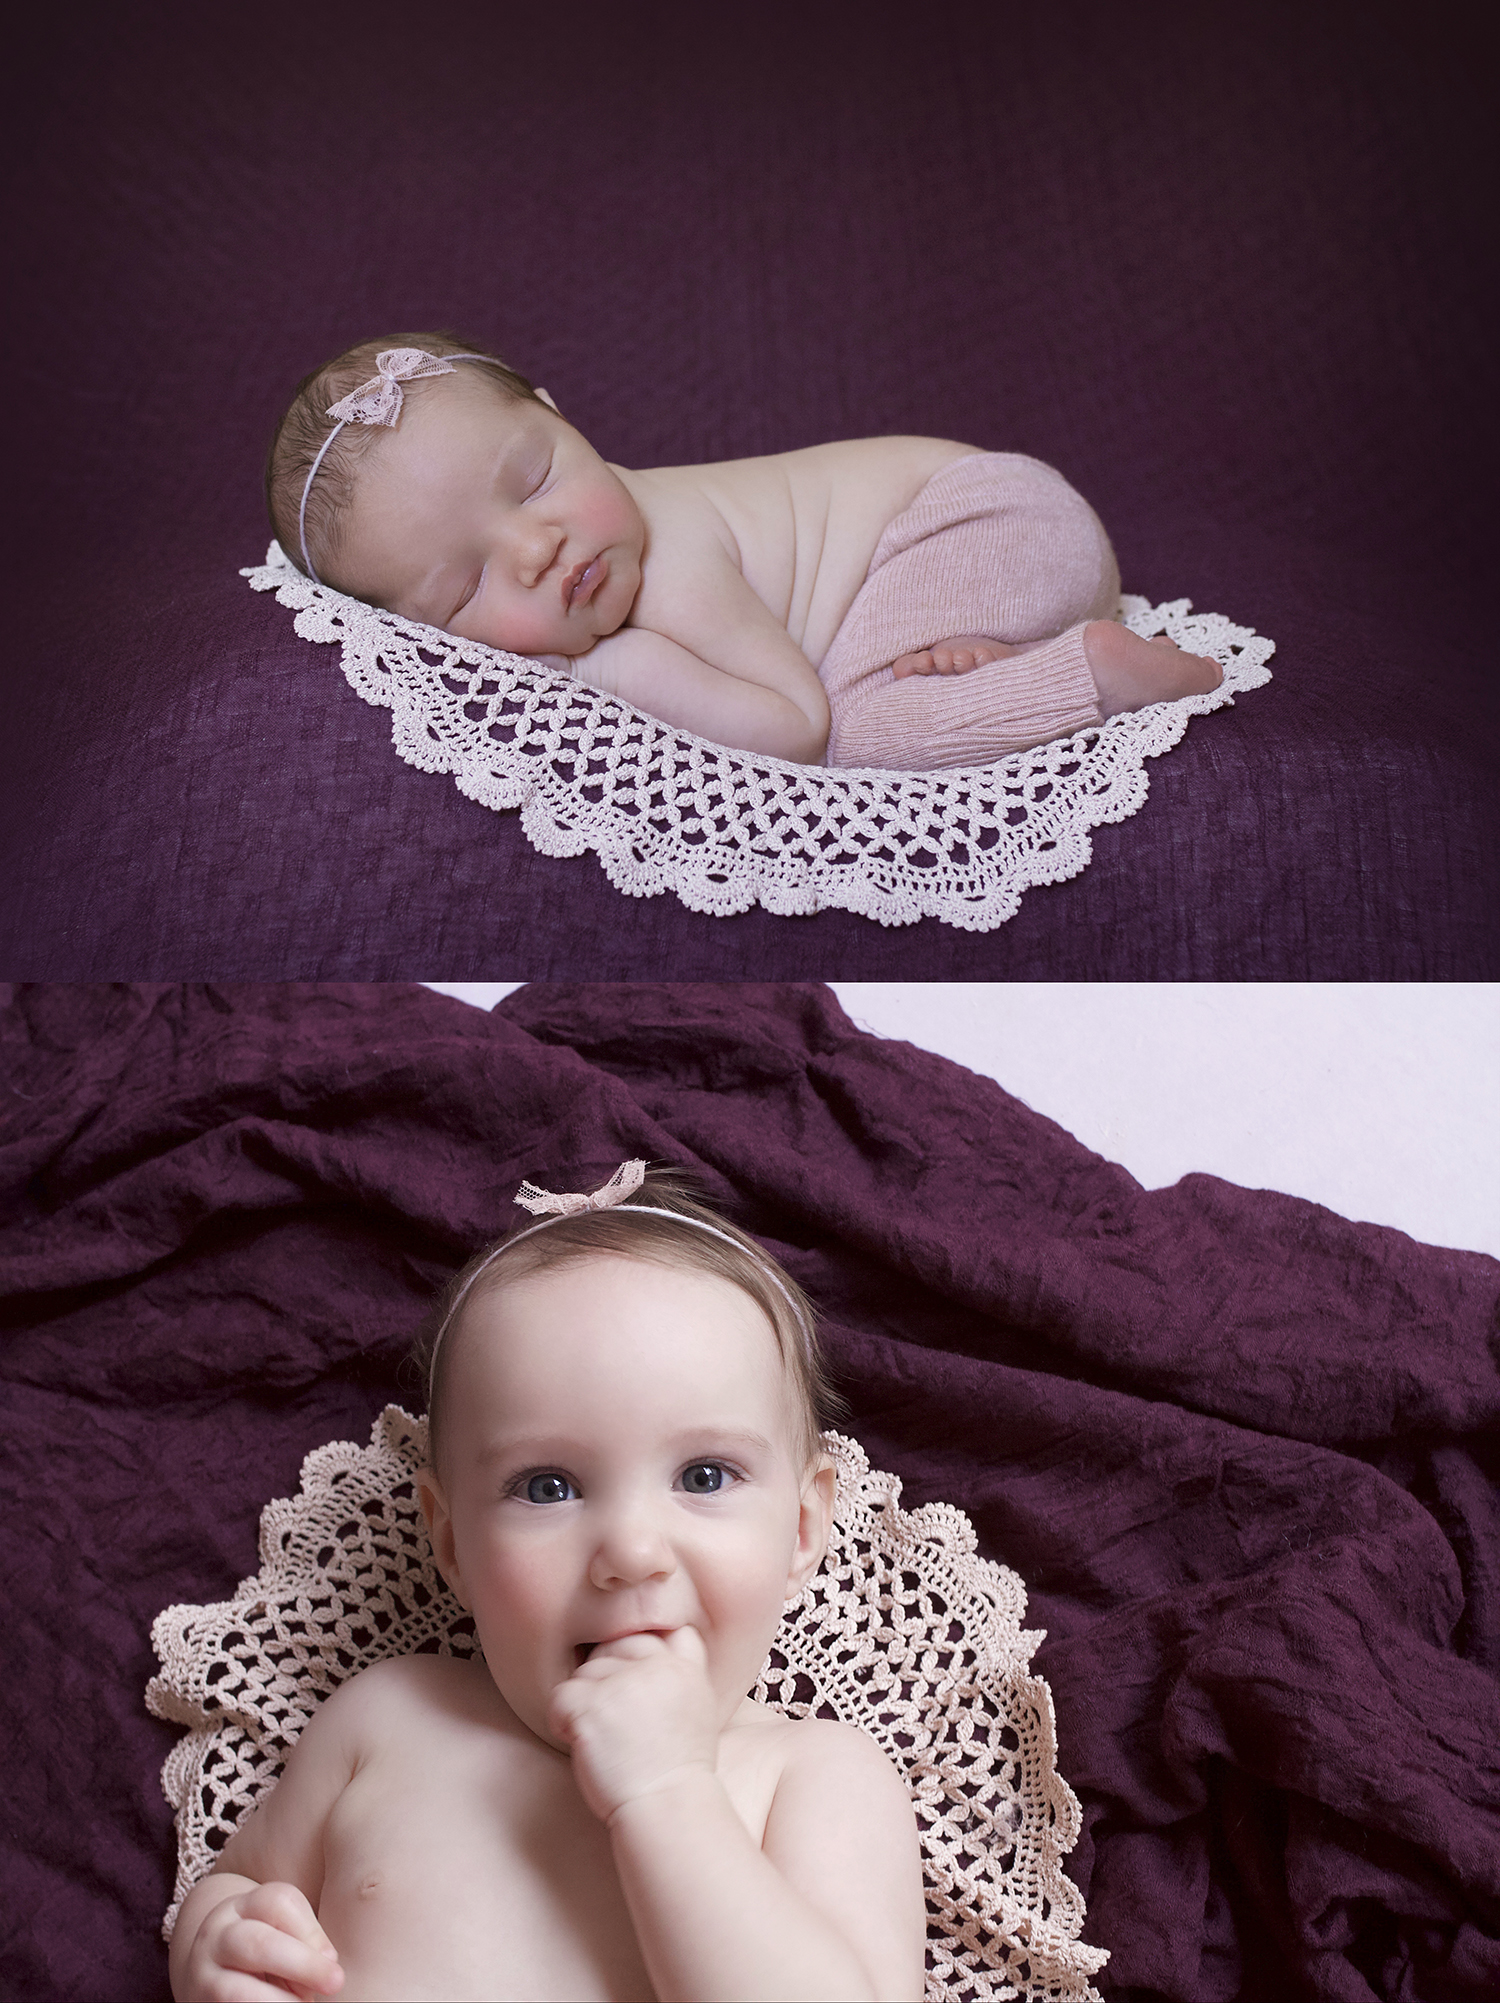 Newborn baby girl sleeping on plum blanket with dusty pink lace doily and pants and tieback and same set up with 7 month old baby girl